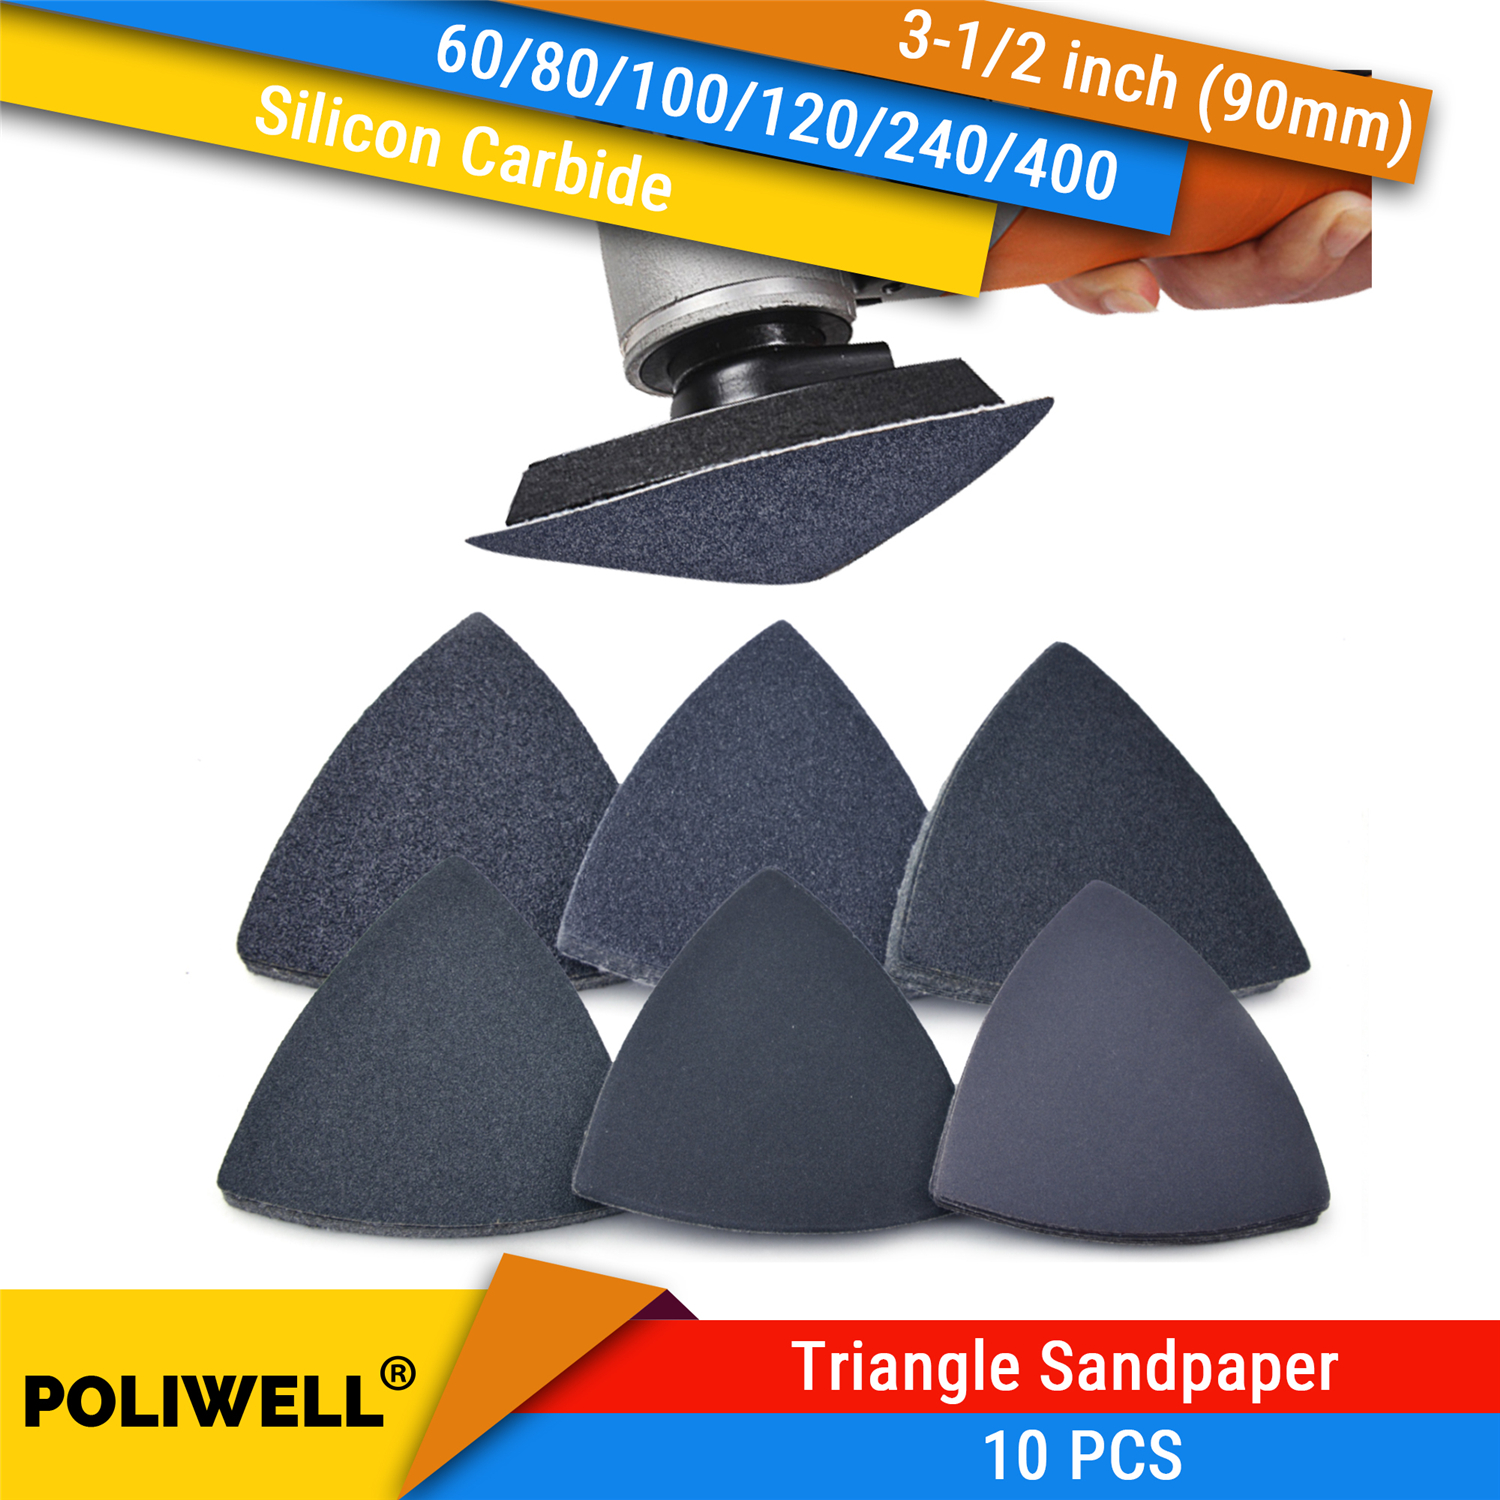 10Pcs Oscillating Multi Tools Hook & Loop Sanding Paper Saw Blade Triangular Sander Sandpaper Silicon Carbide Sanding Sheet For